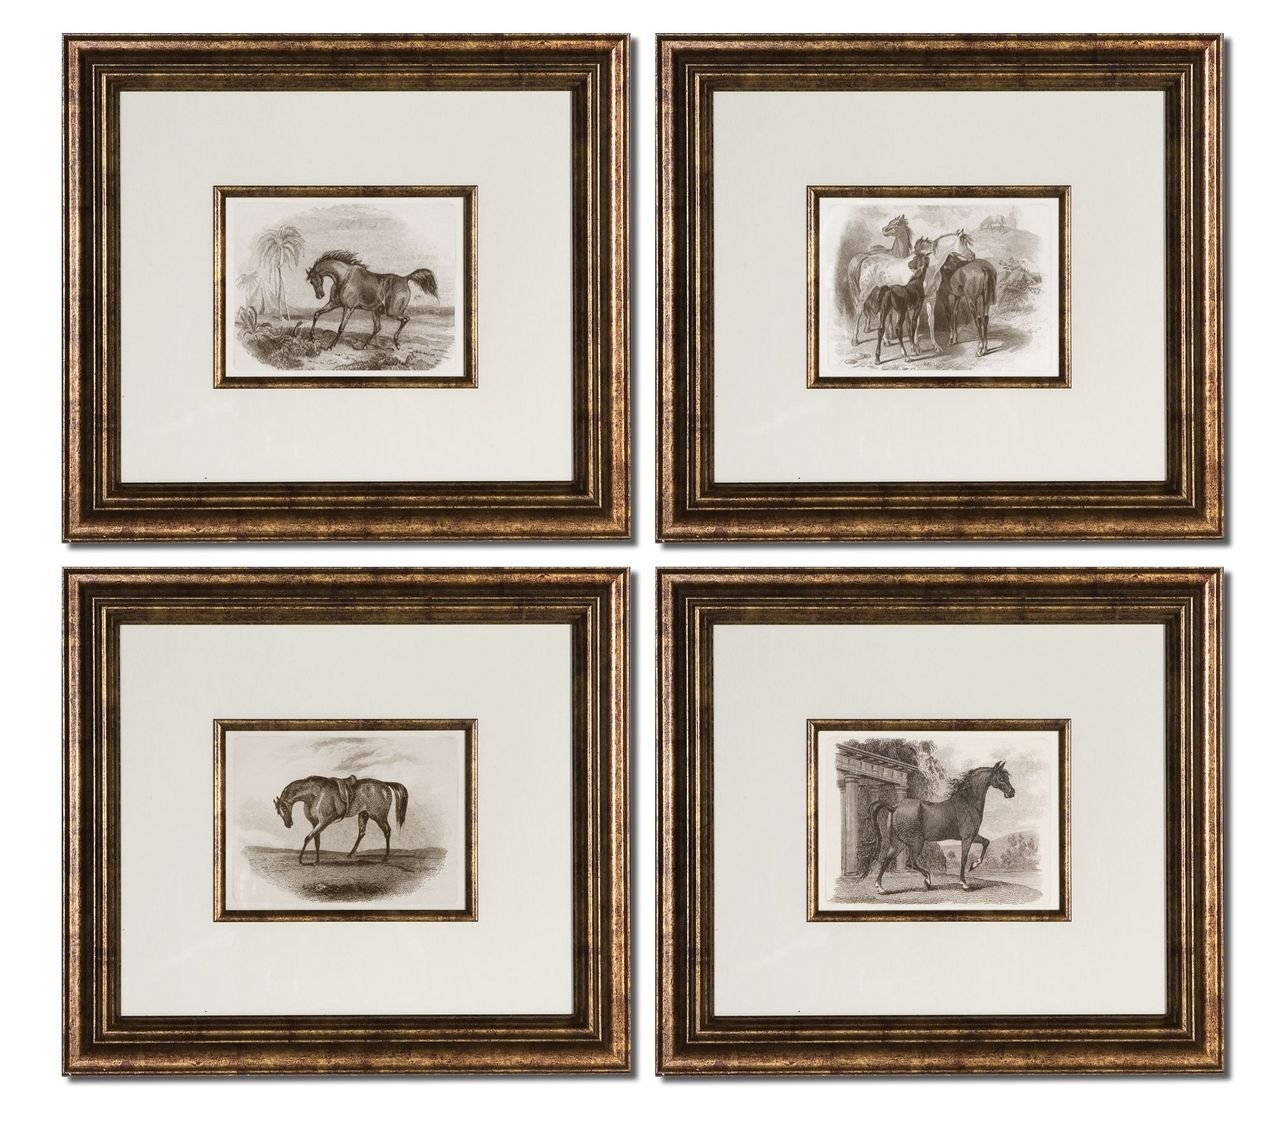 Equestrian Horse Ranch Vintage Wall Art Prints Set | Bronze Framed by Intelligent Design